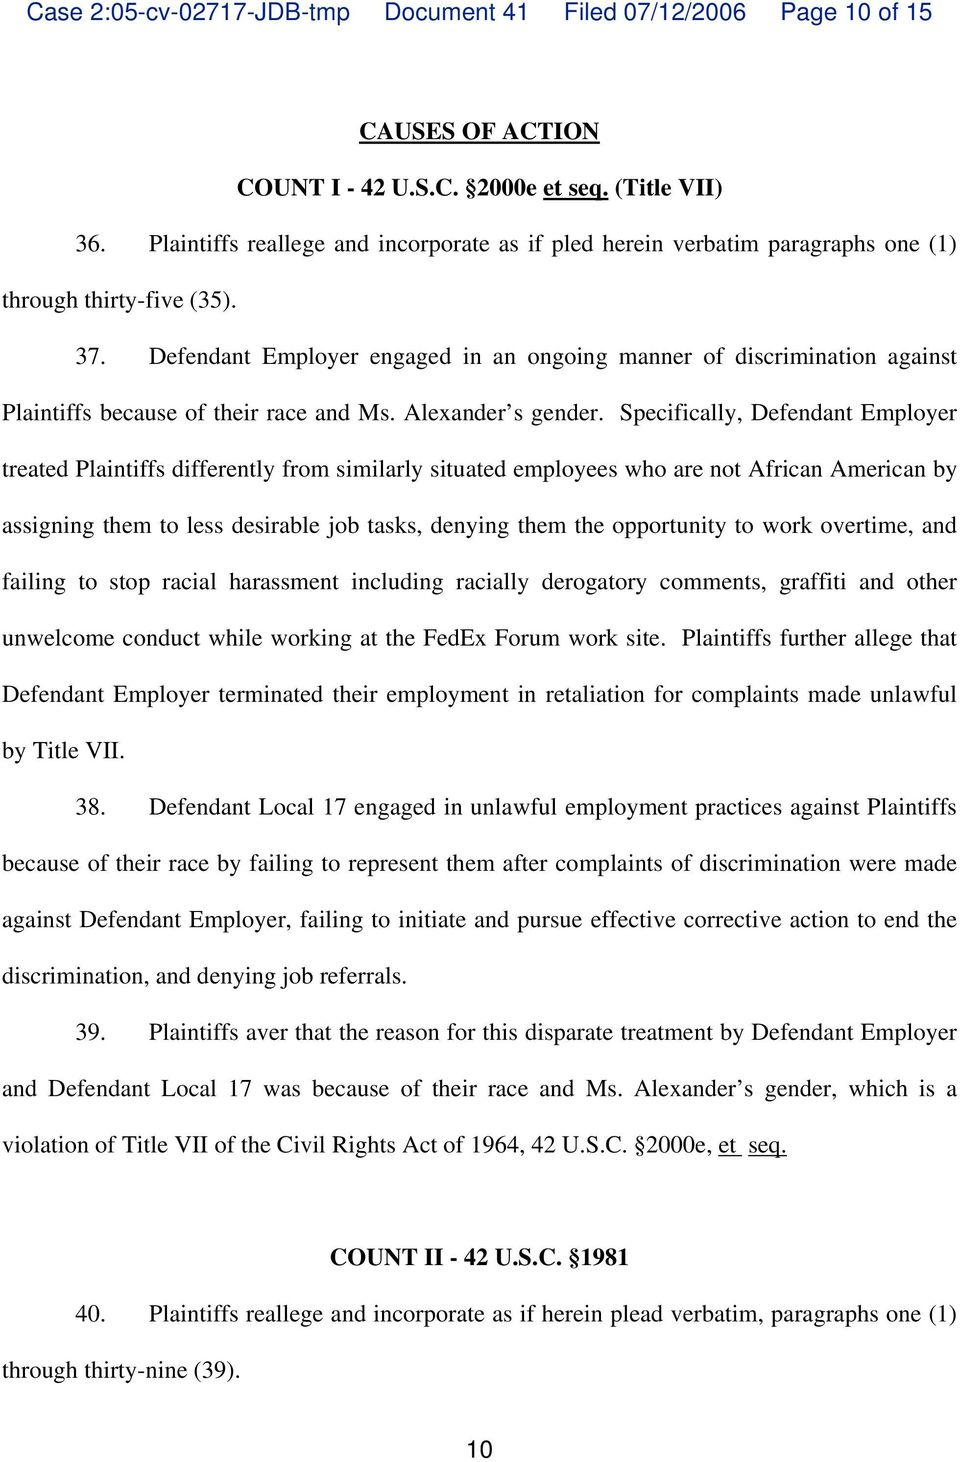 Defendant Employer engaged in an ongoing manner of discrimination against Plaintiffs because of their race and Ms. Alexander s gender.